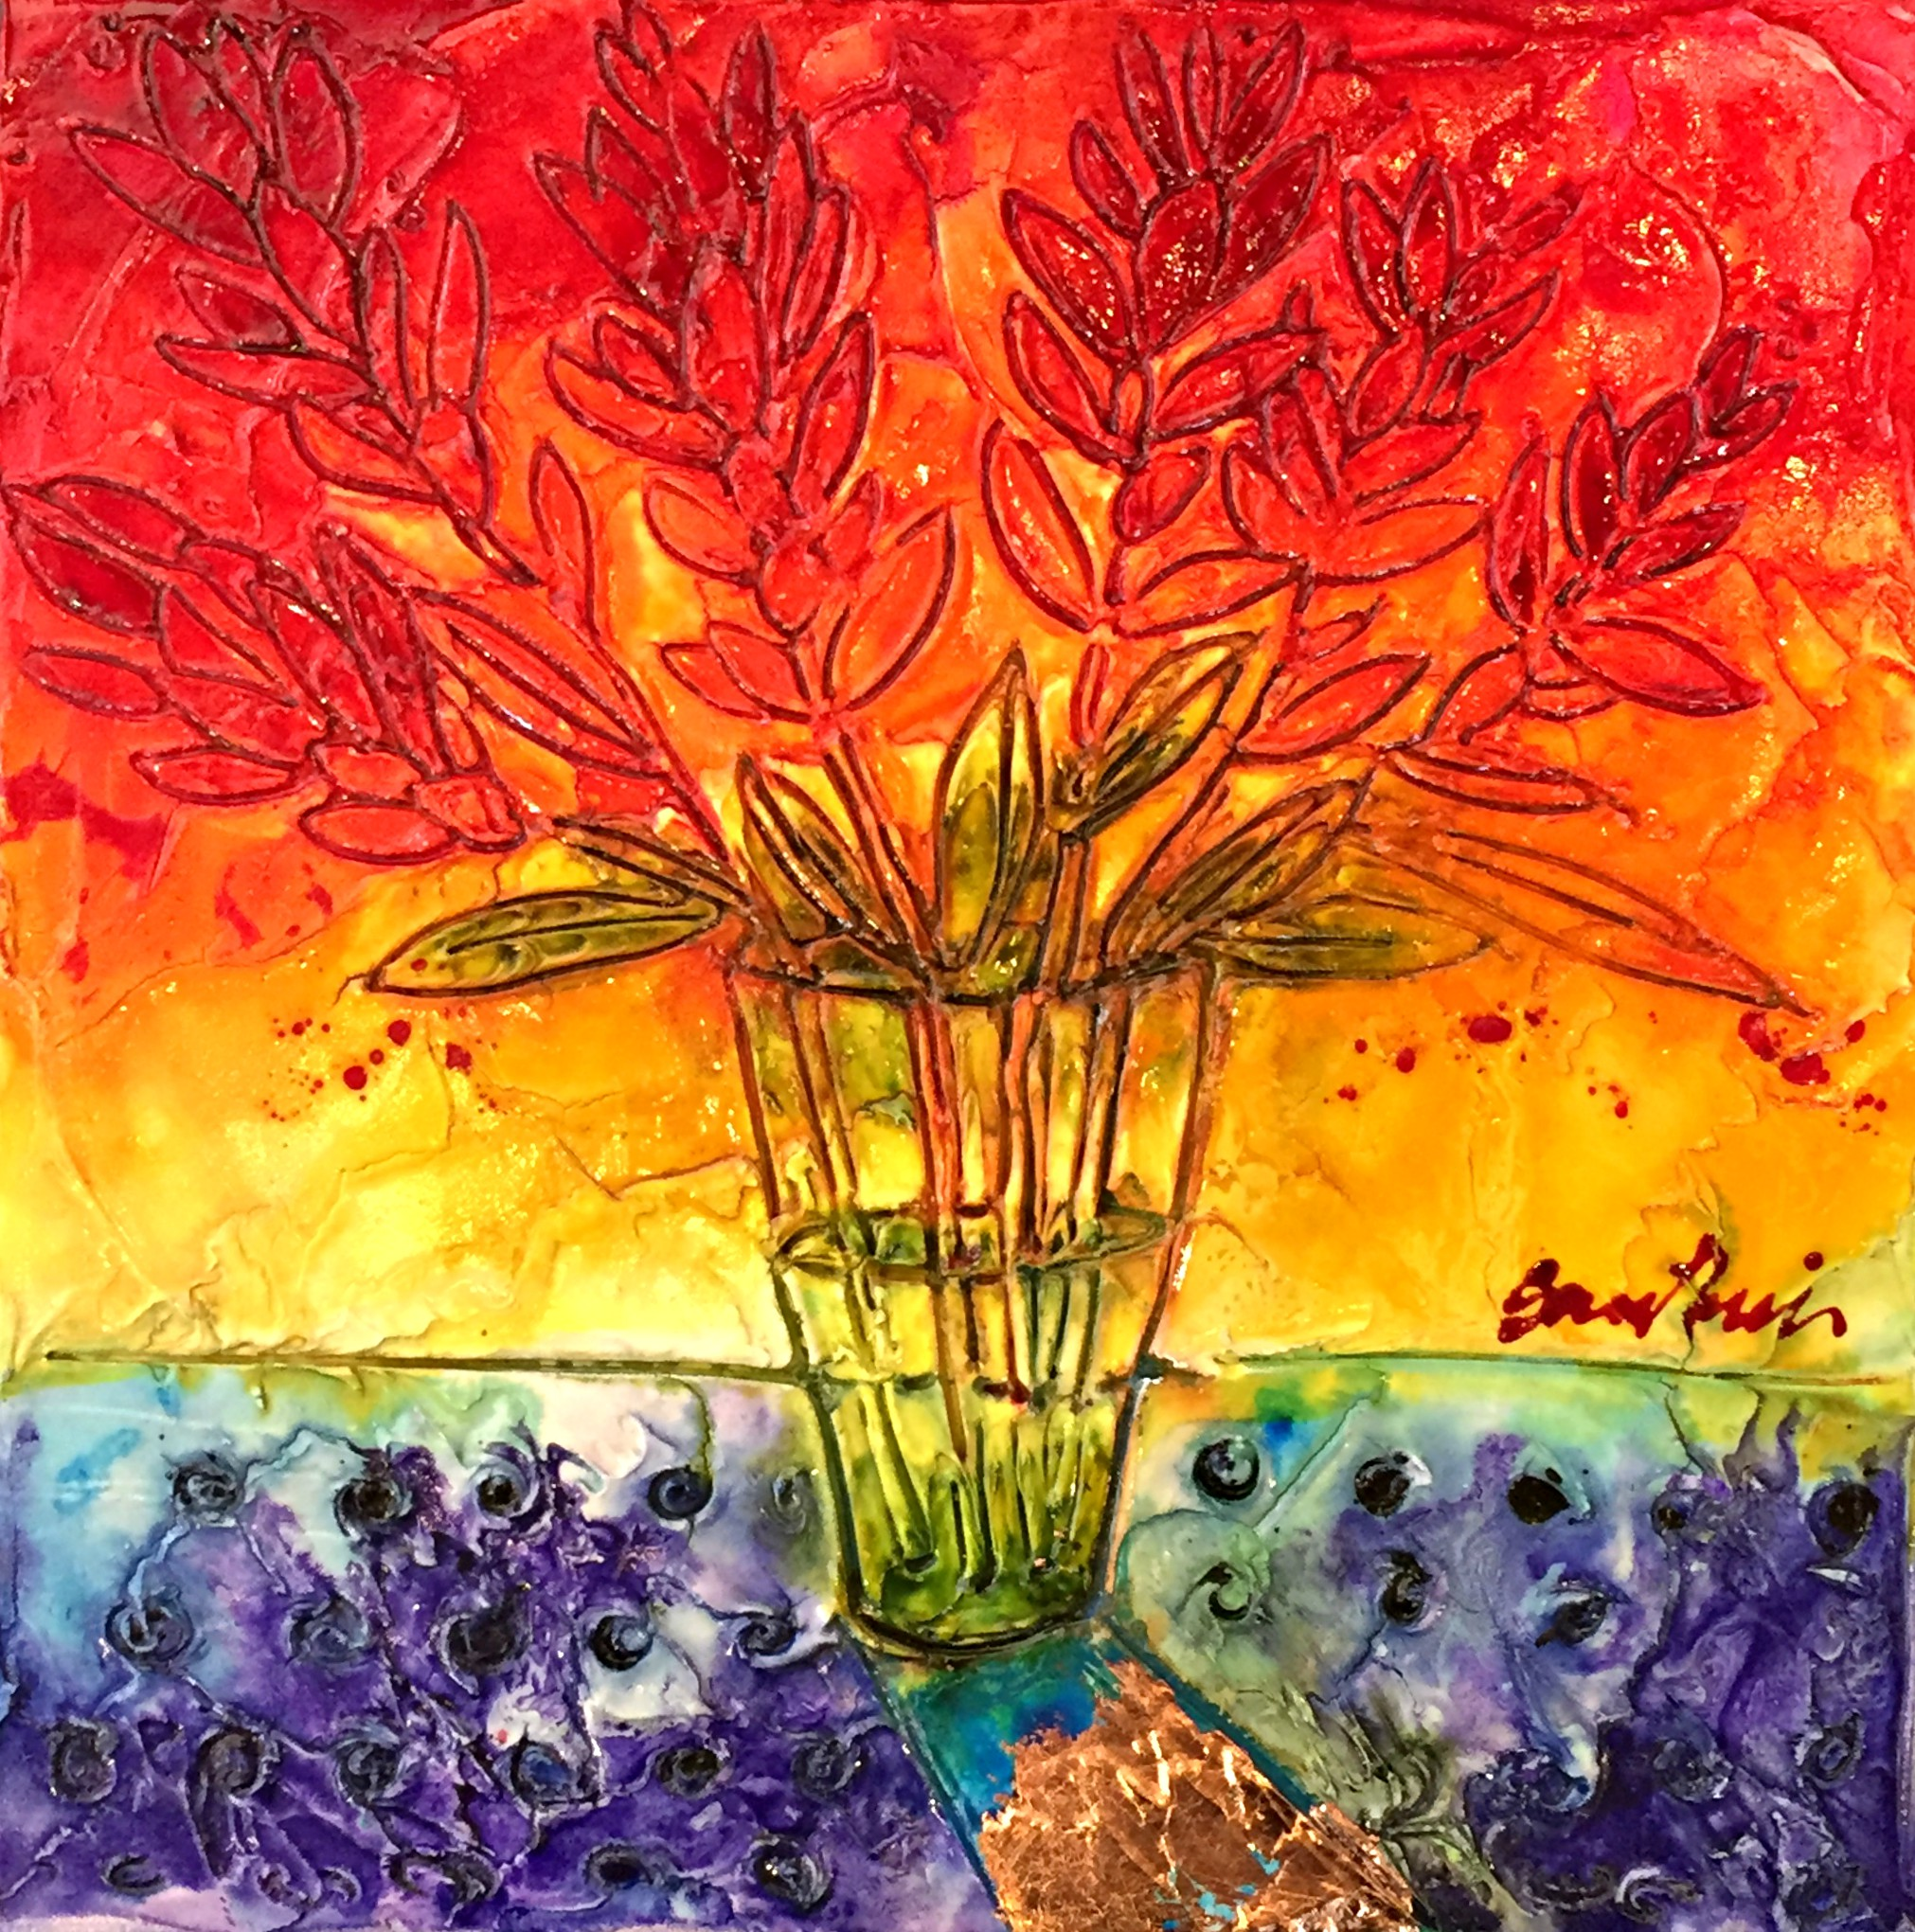 Flames in Glass, mixed media painting by Joanne Gauthier | Effusion Art Gallery + Cast Glass Studio, Invermere BC